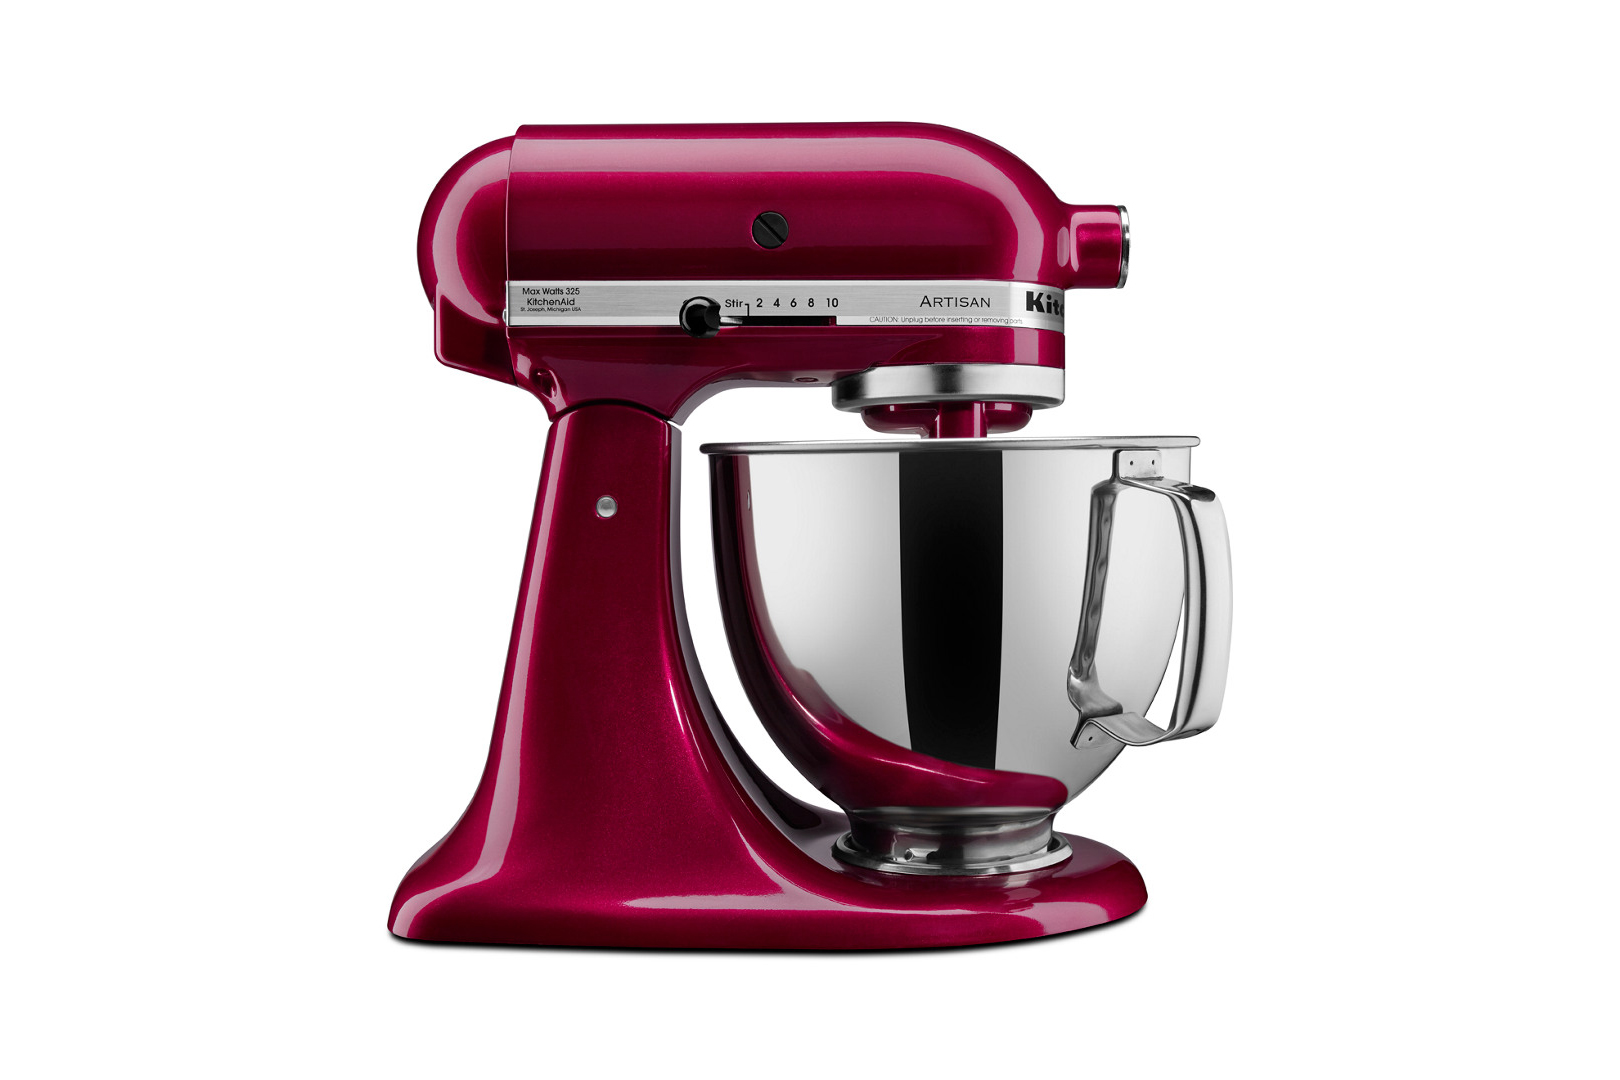 KitchenAid Artisan Series 5qt Tilt-Head Stand Mixer